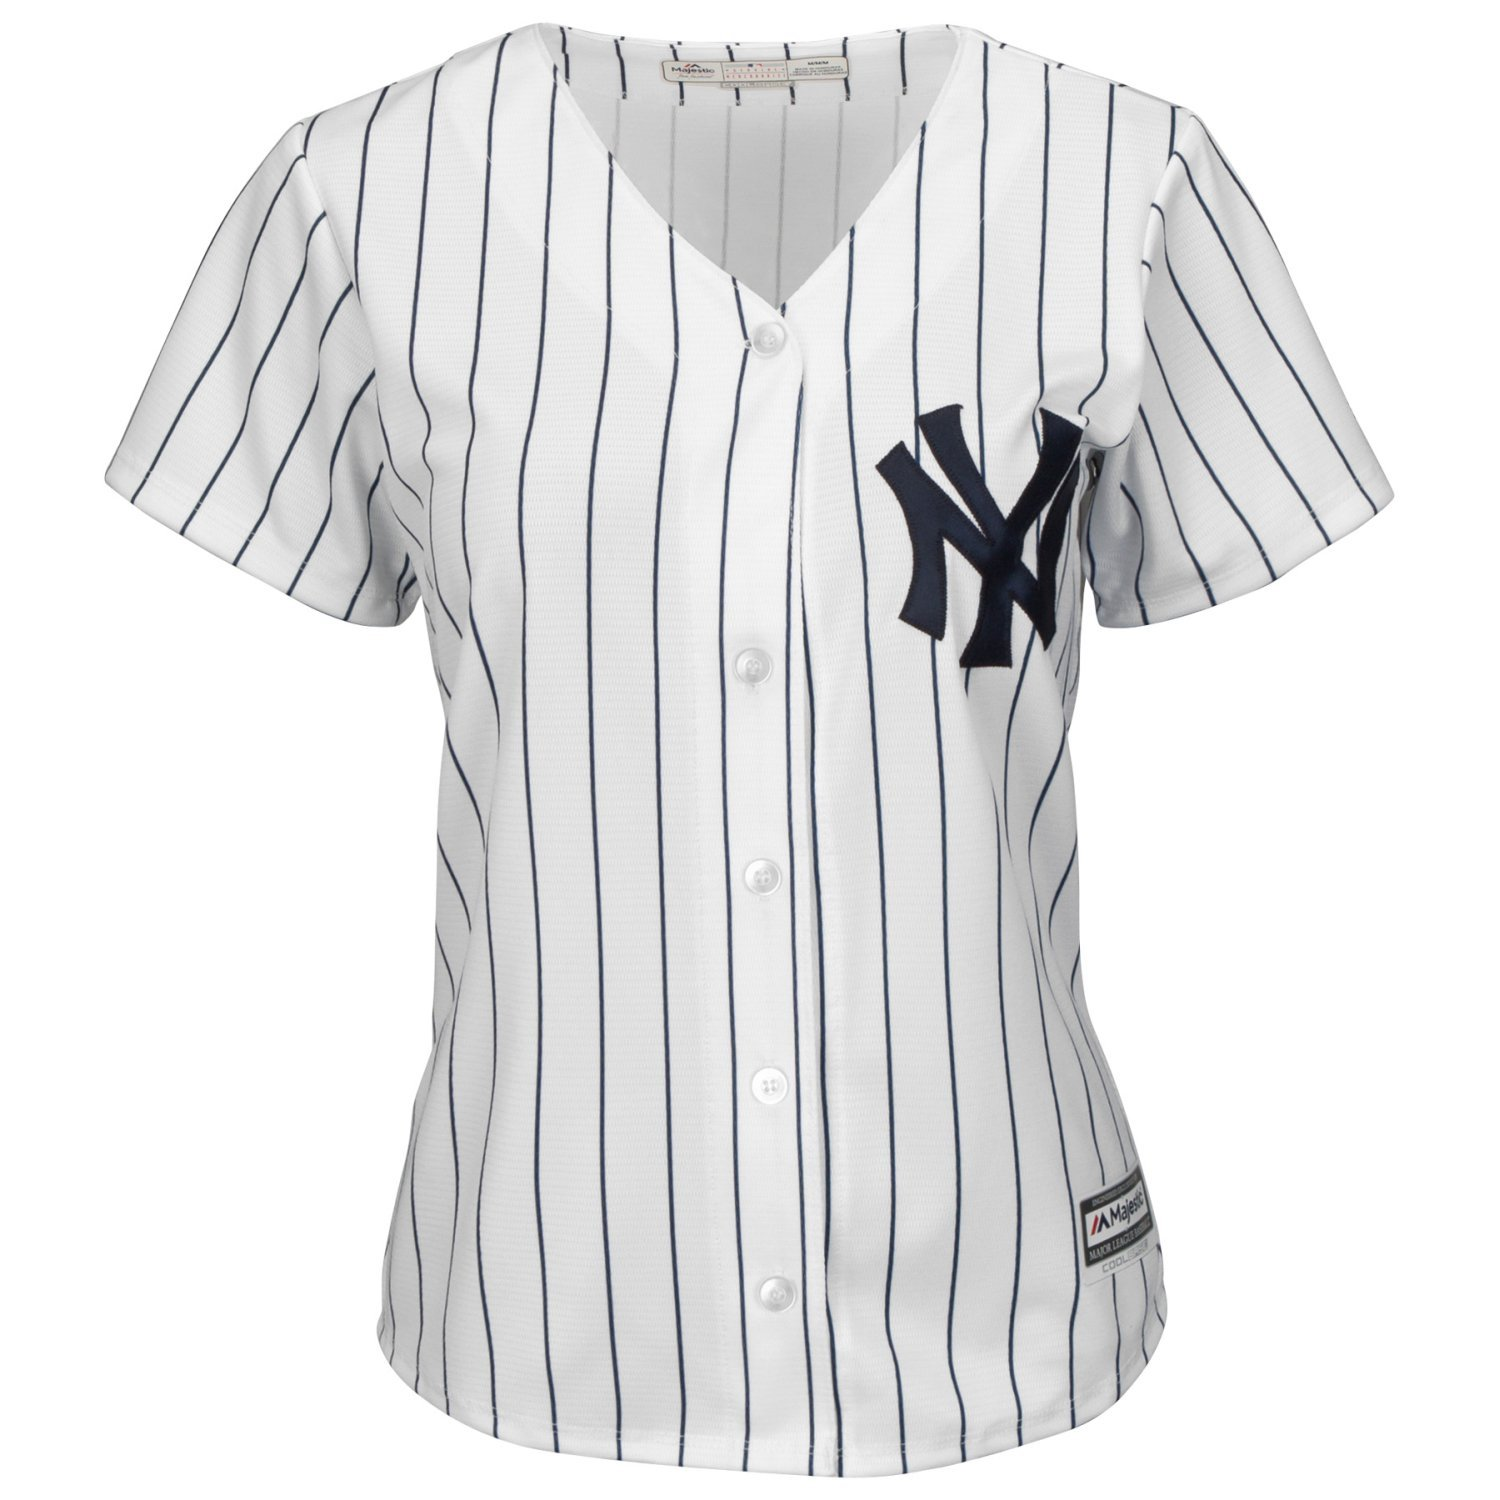 S New York Yankees Majestic Authentic Cool Base Jersey